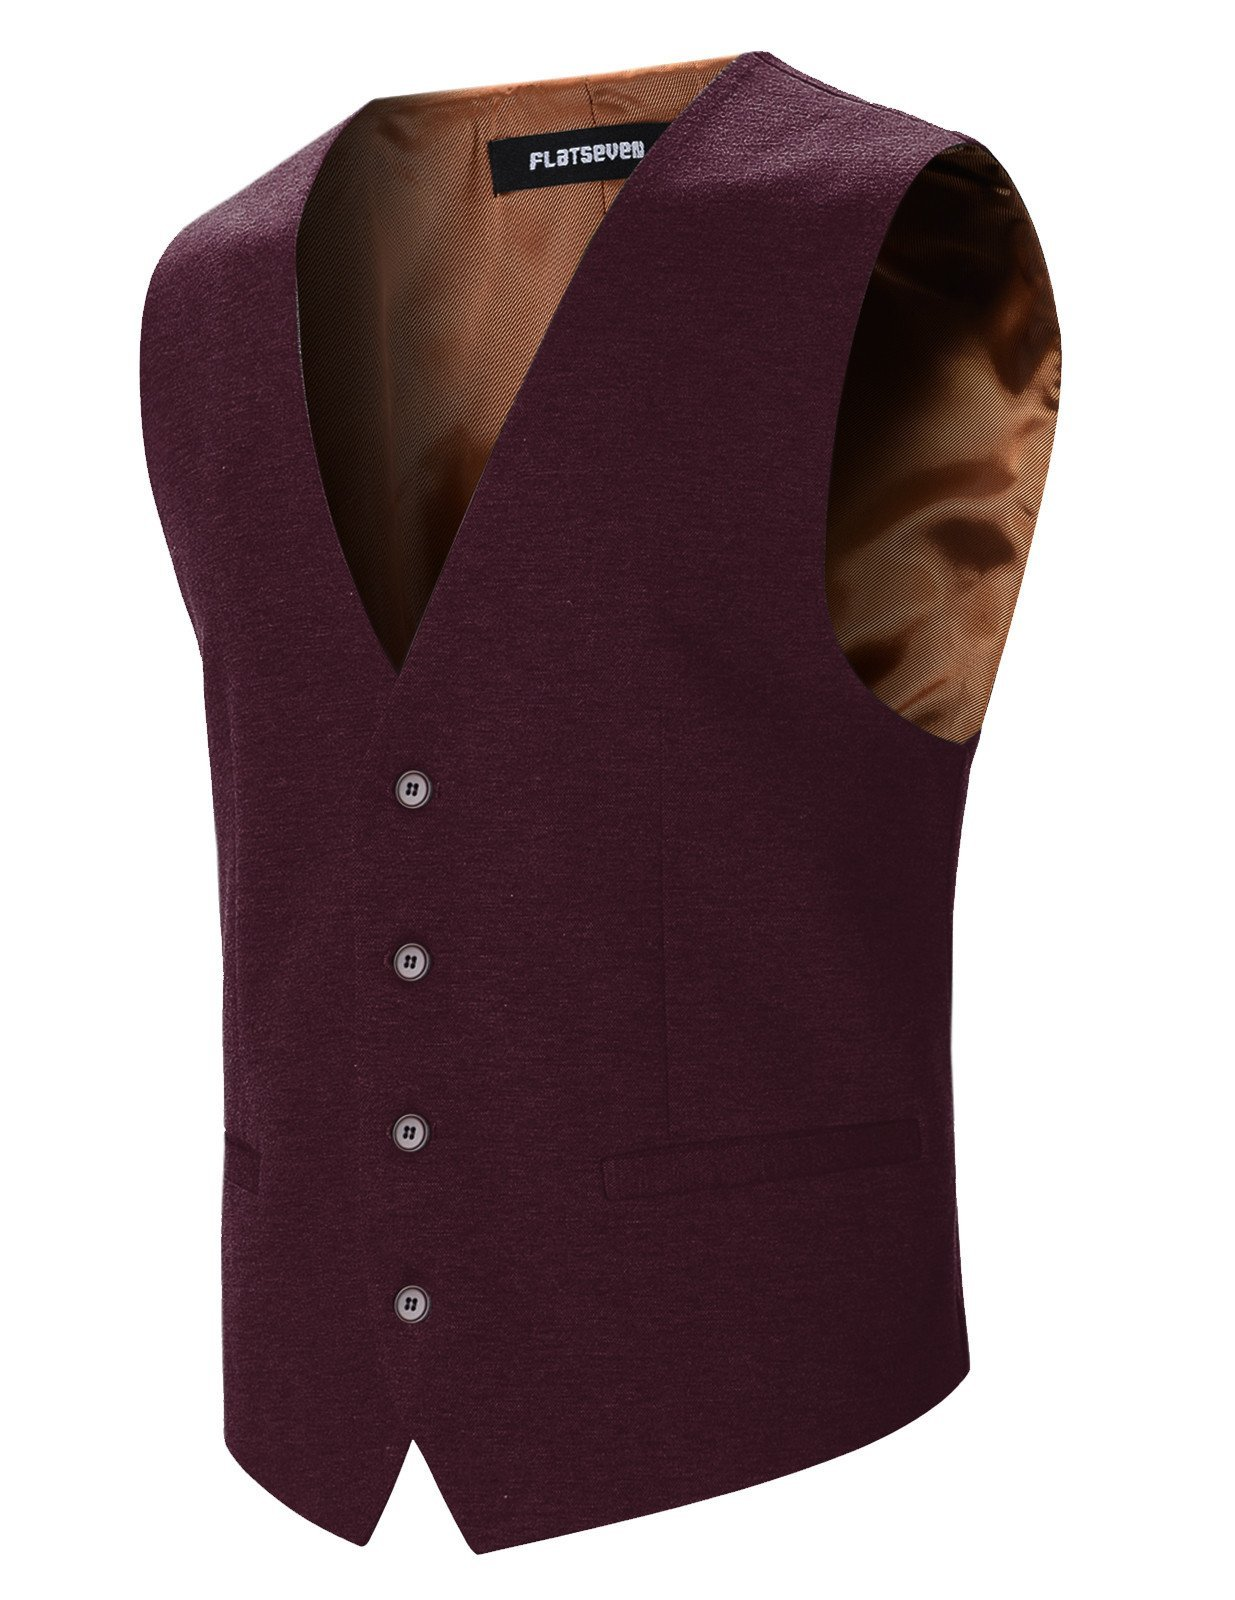 FLATSEVEN Mens Designer Stylish Casual Vest Premium (VE701) Wine, XL